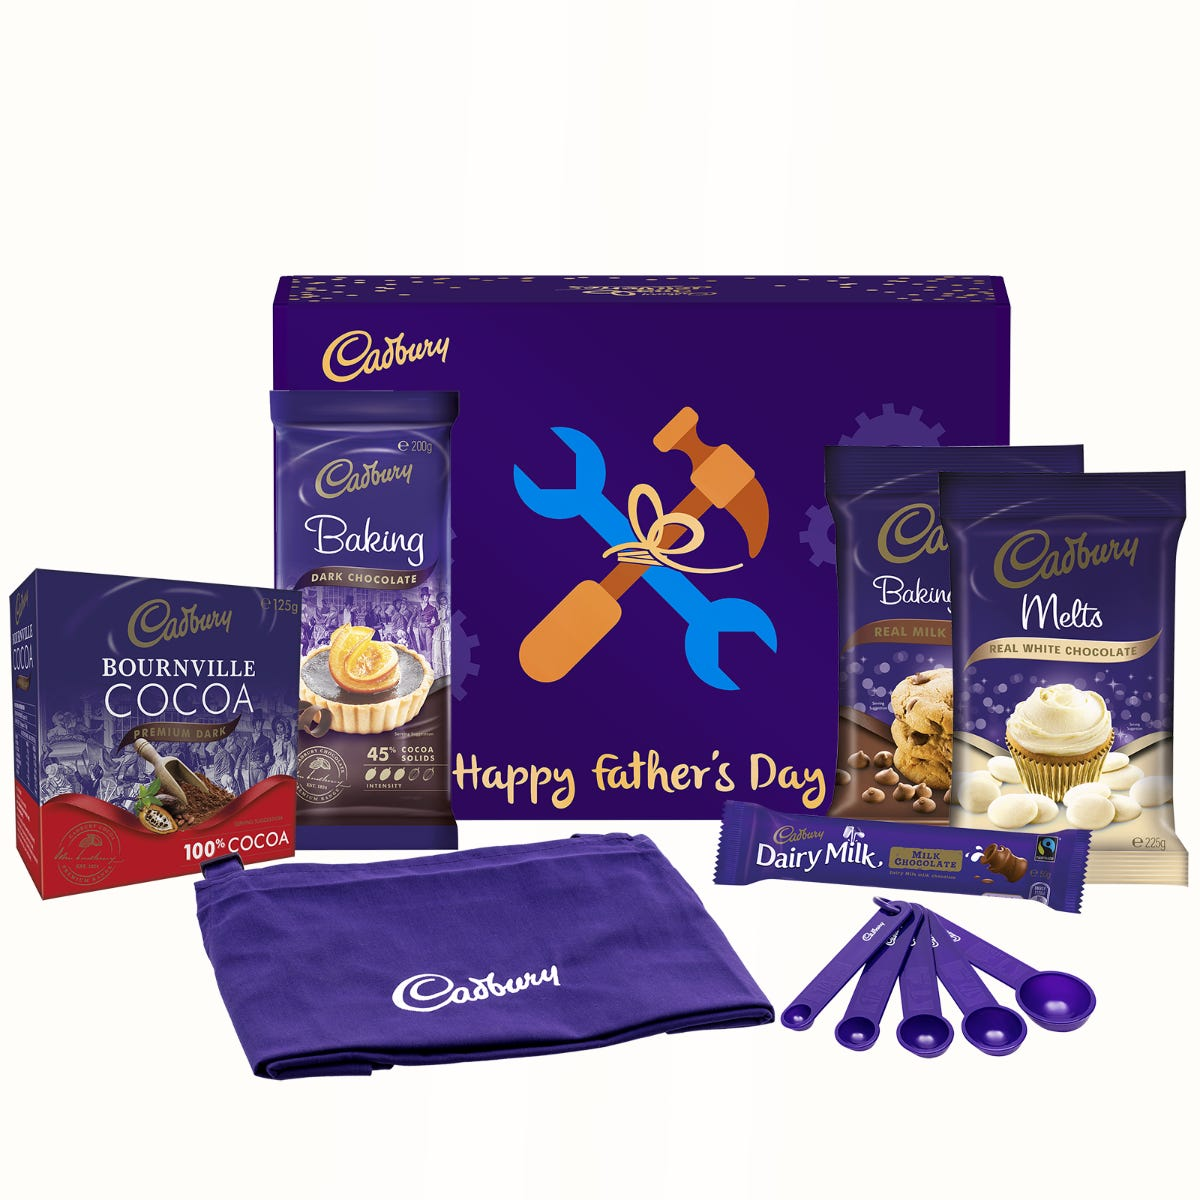 Cadbury Baking Gift Pack - Father's Day